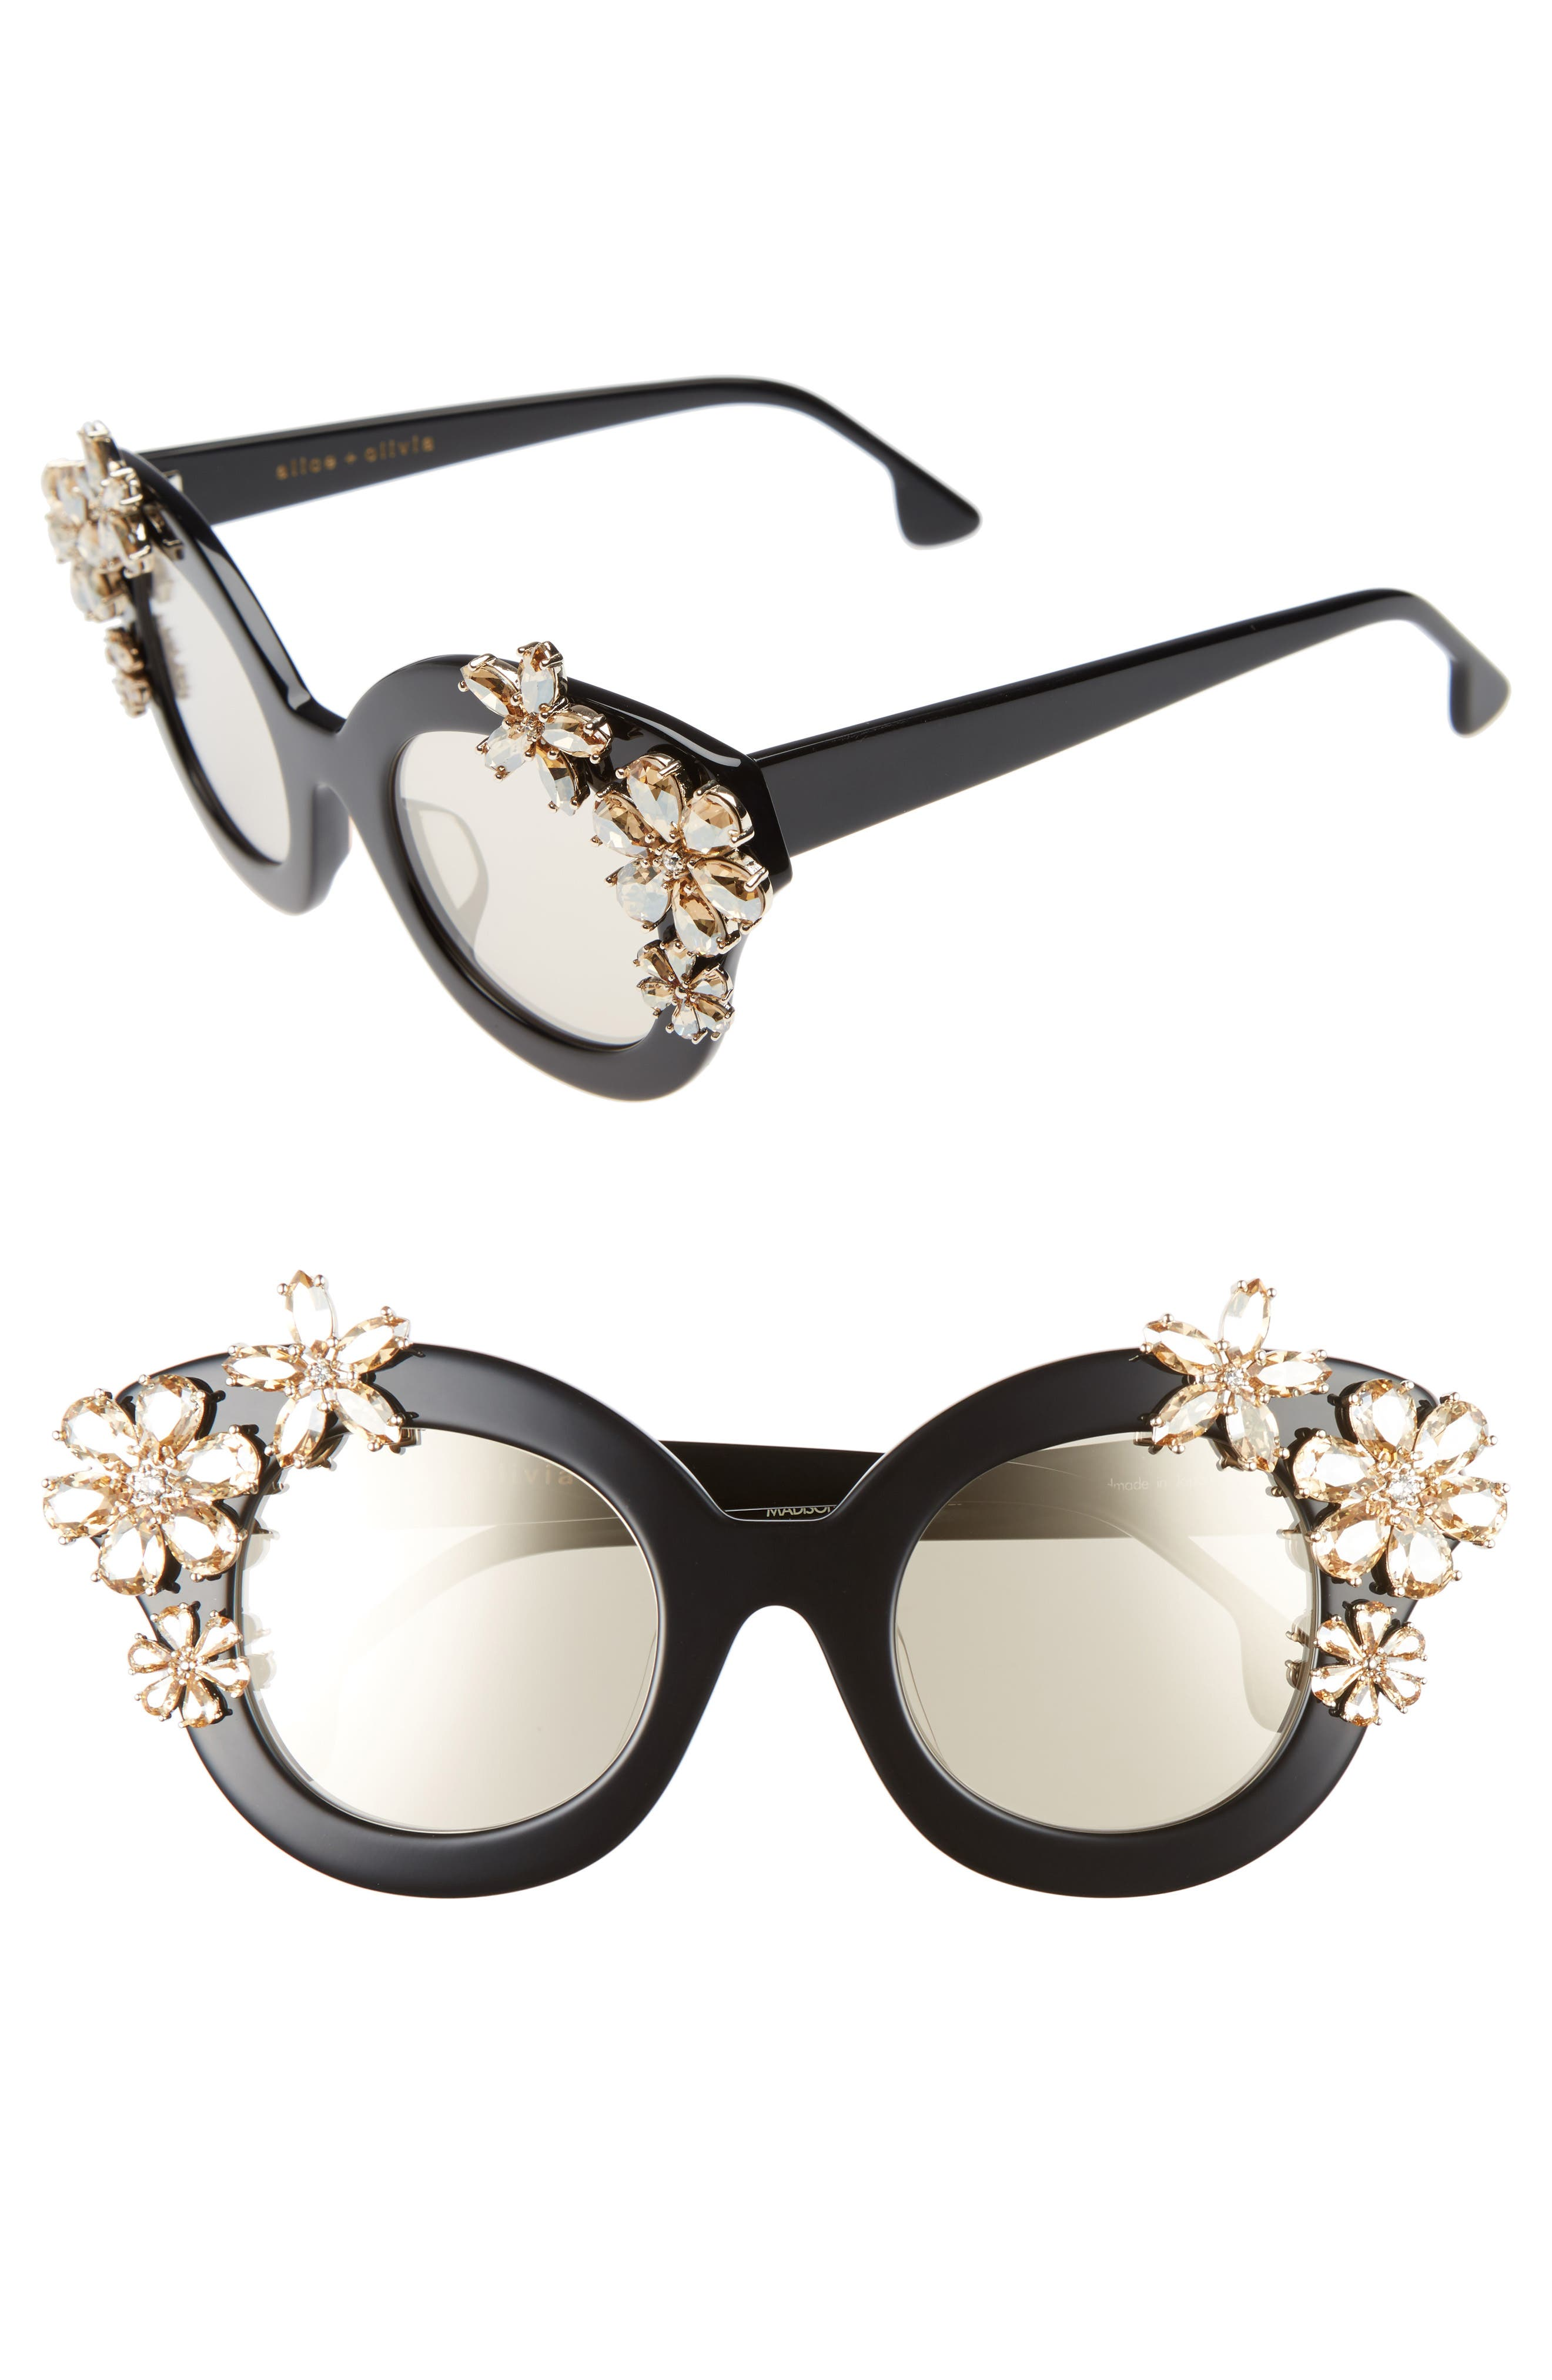 Madison Floral 46mm Special Fit Embellished Cat Eye Sunglasses,                             Main thumbnail 1, color,                             001